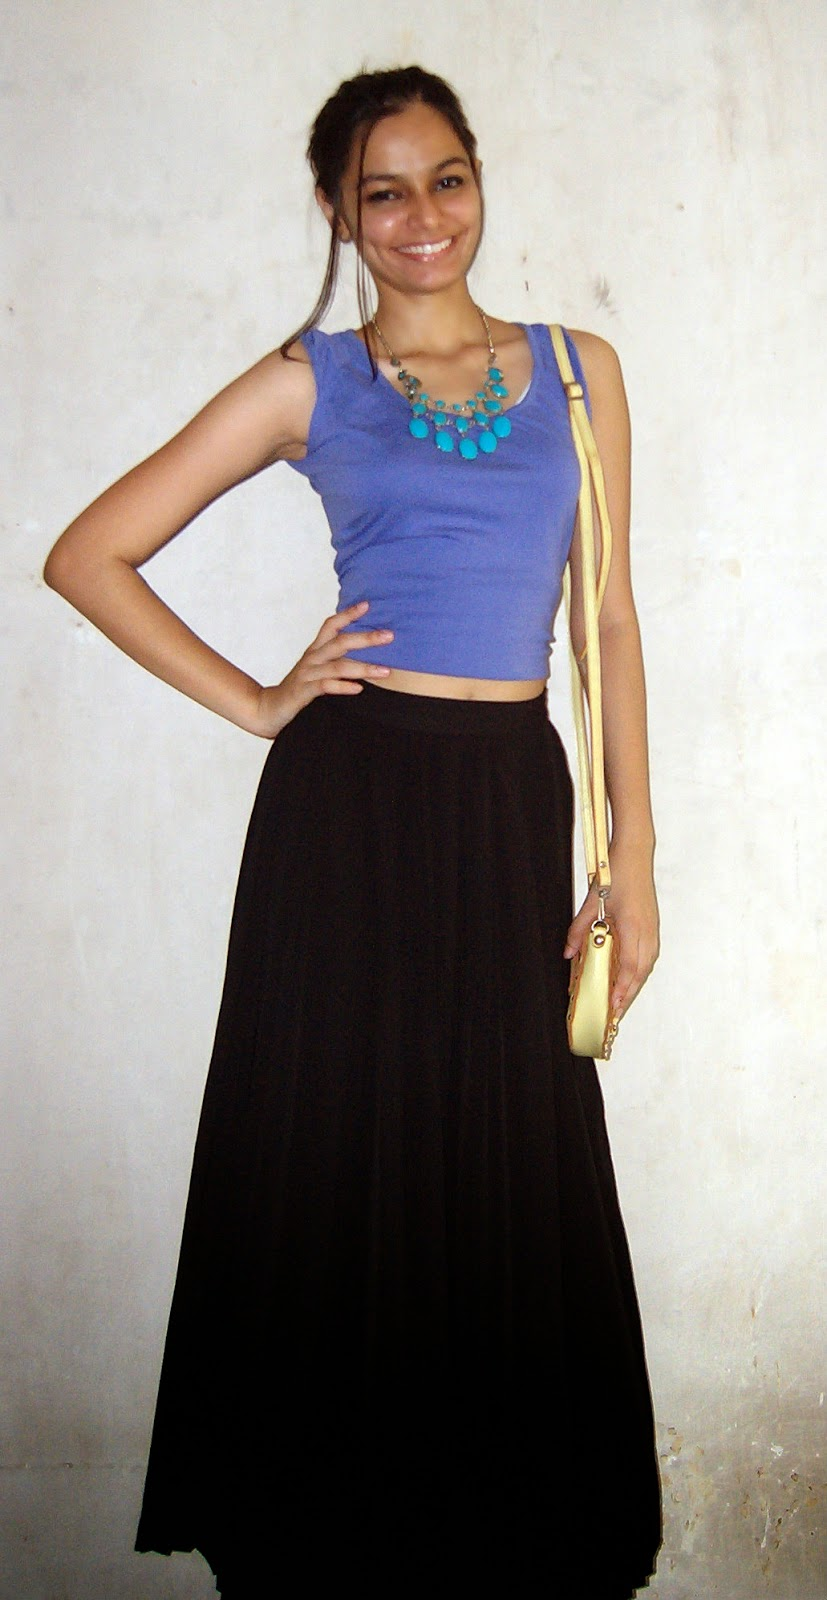 pleated maxi skirt, how to wear maxi skirts, crop tops, how to make crop tops, diy, mumbai streetstyle, neon, purple, maxi skirt, look for less, mumbai fashion blogger, indian fashion blogger, indian fashion blog